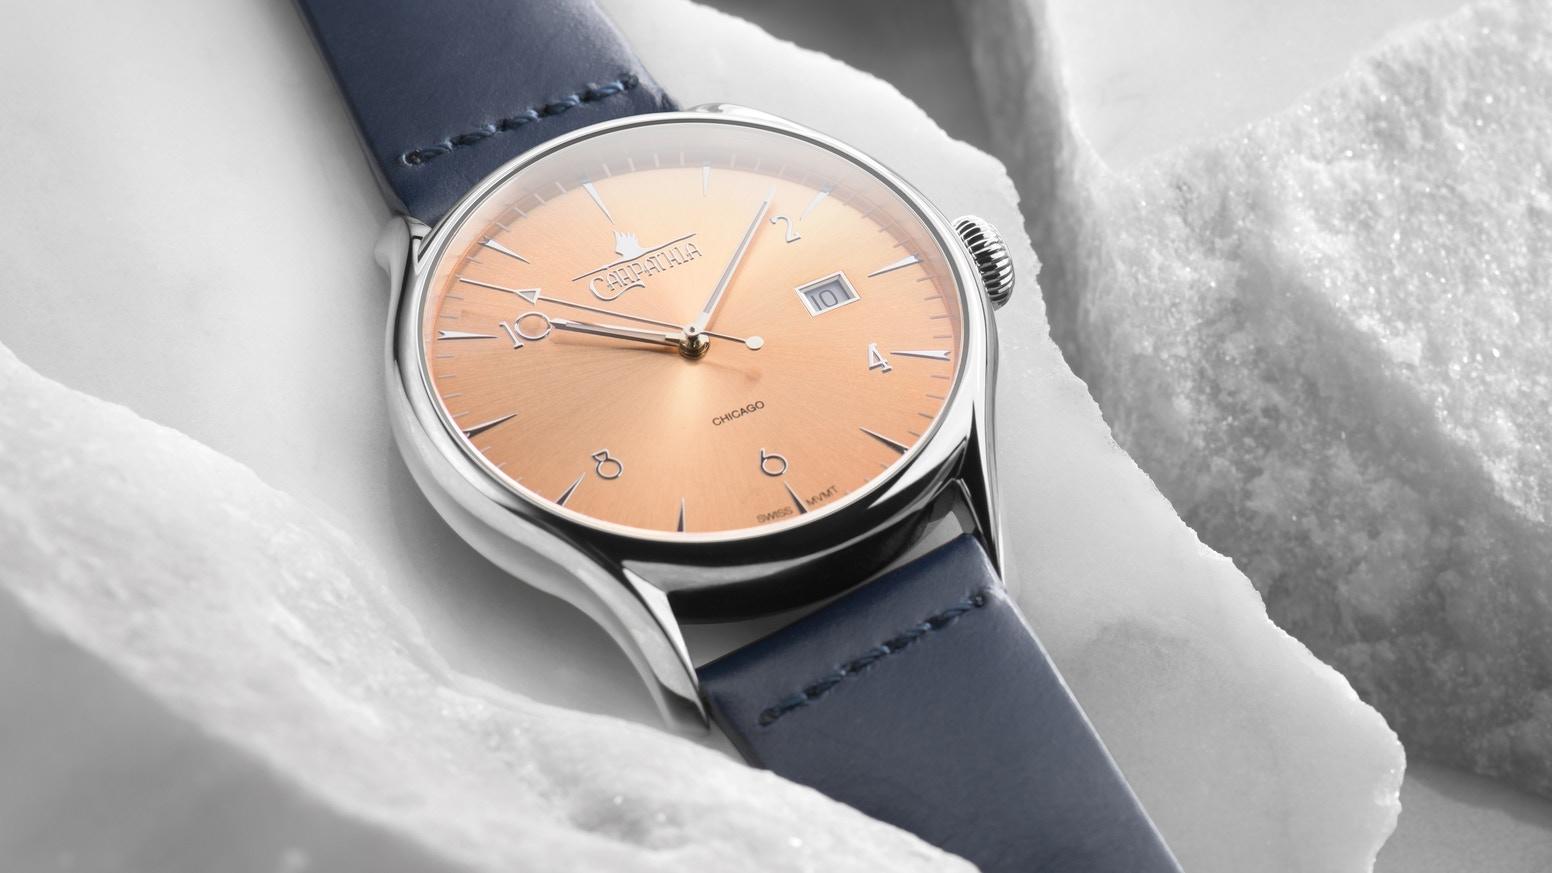 Chicago Inspired Swiss Made Timepieces with Eta 2824-2 Movements